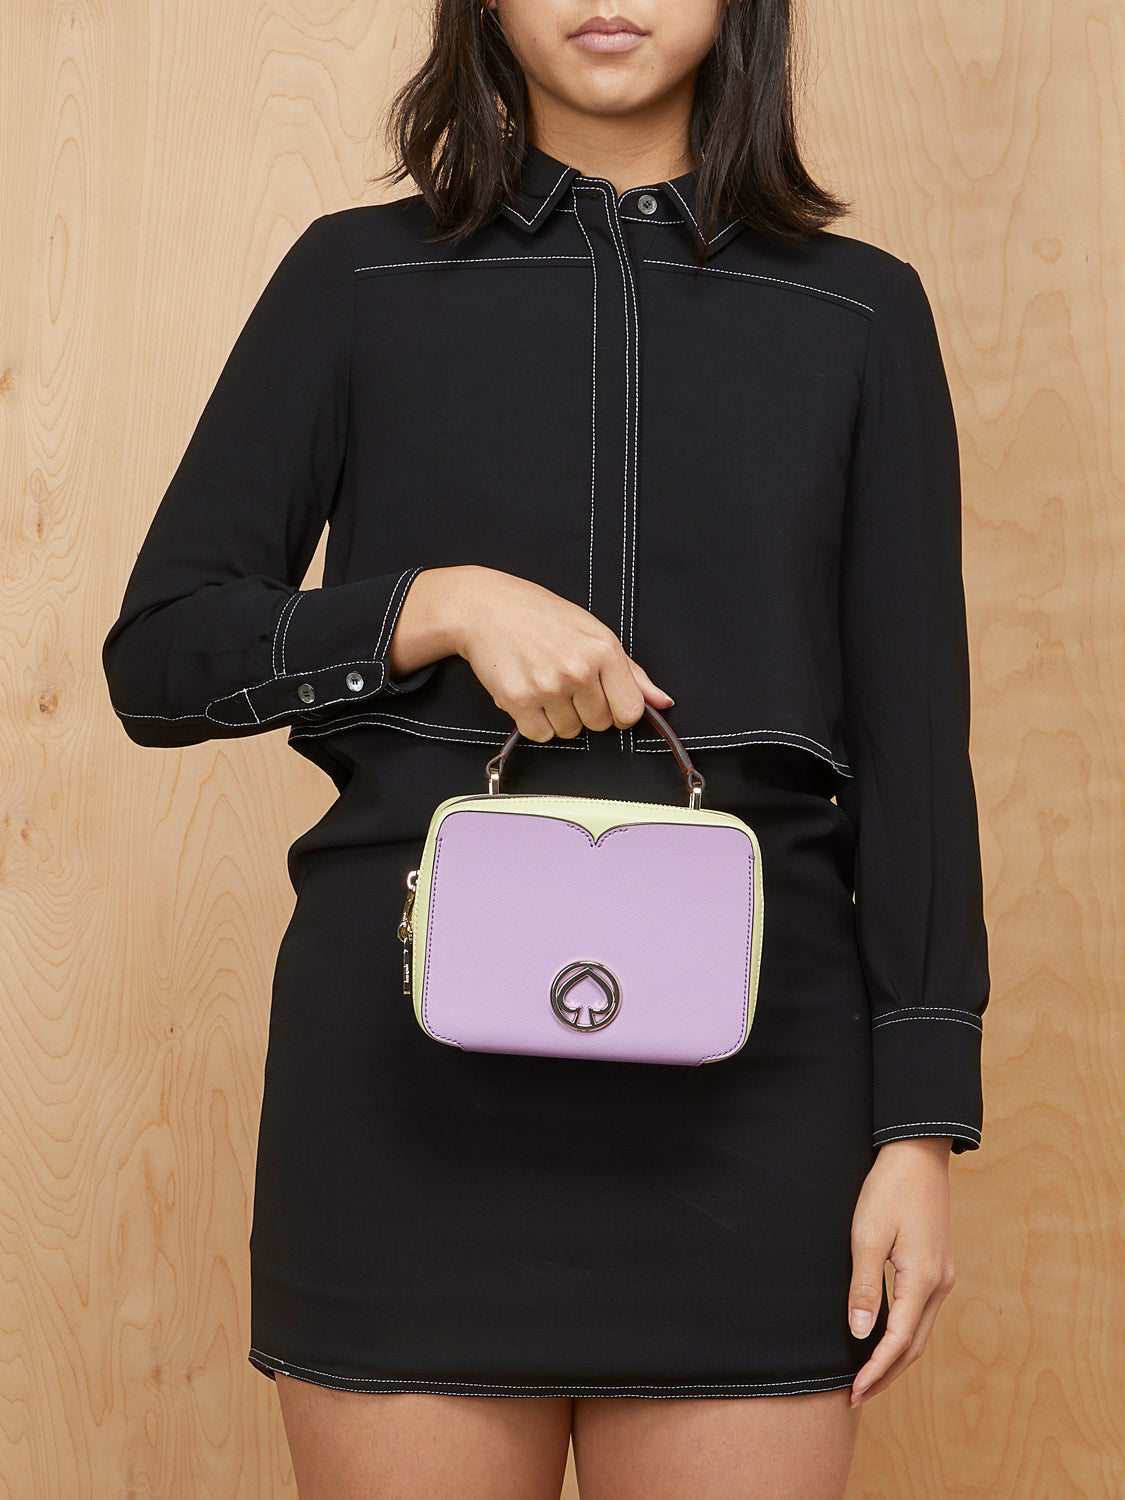 Kate Spade Mini Top Handle with Crossbody Strap